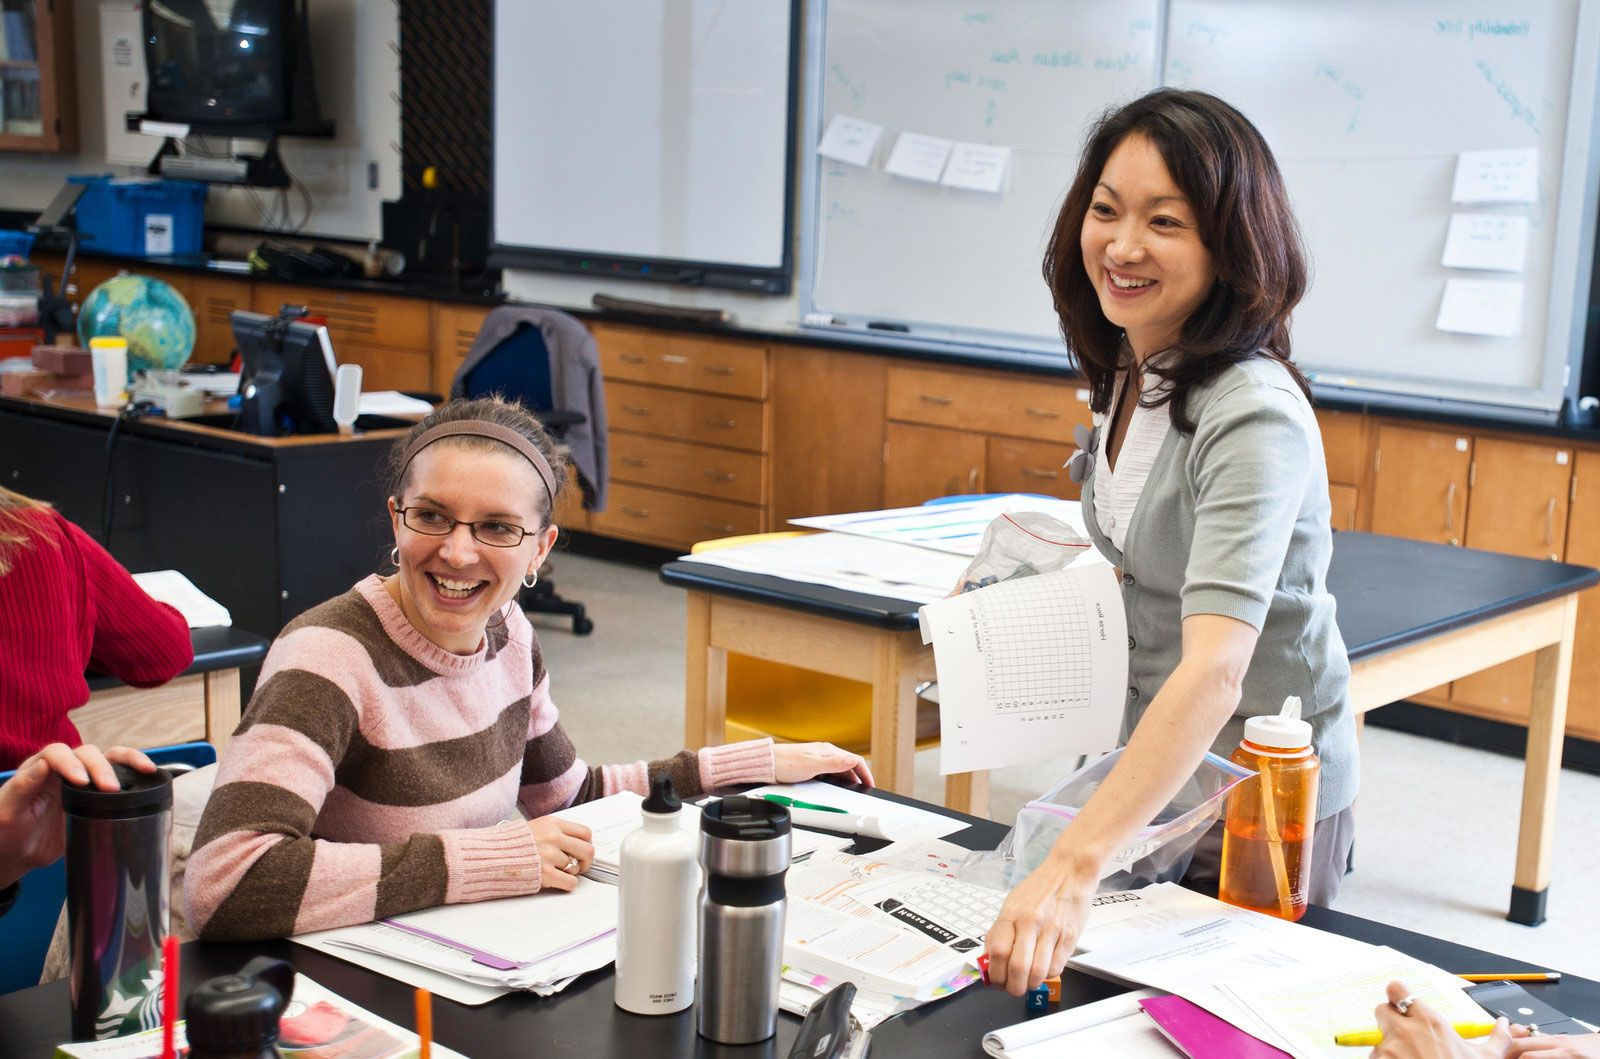 Dr. Jennifer Suh teaching in classroom